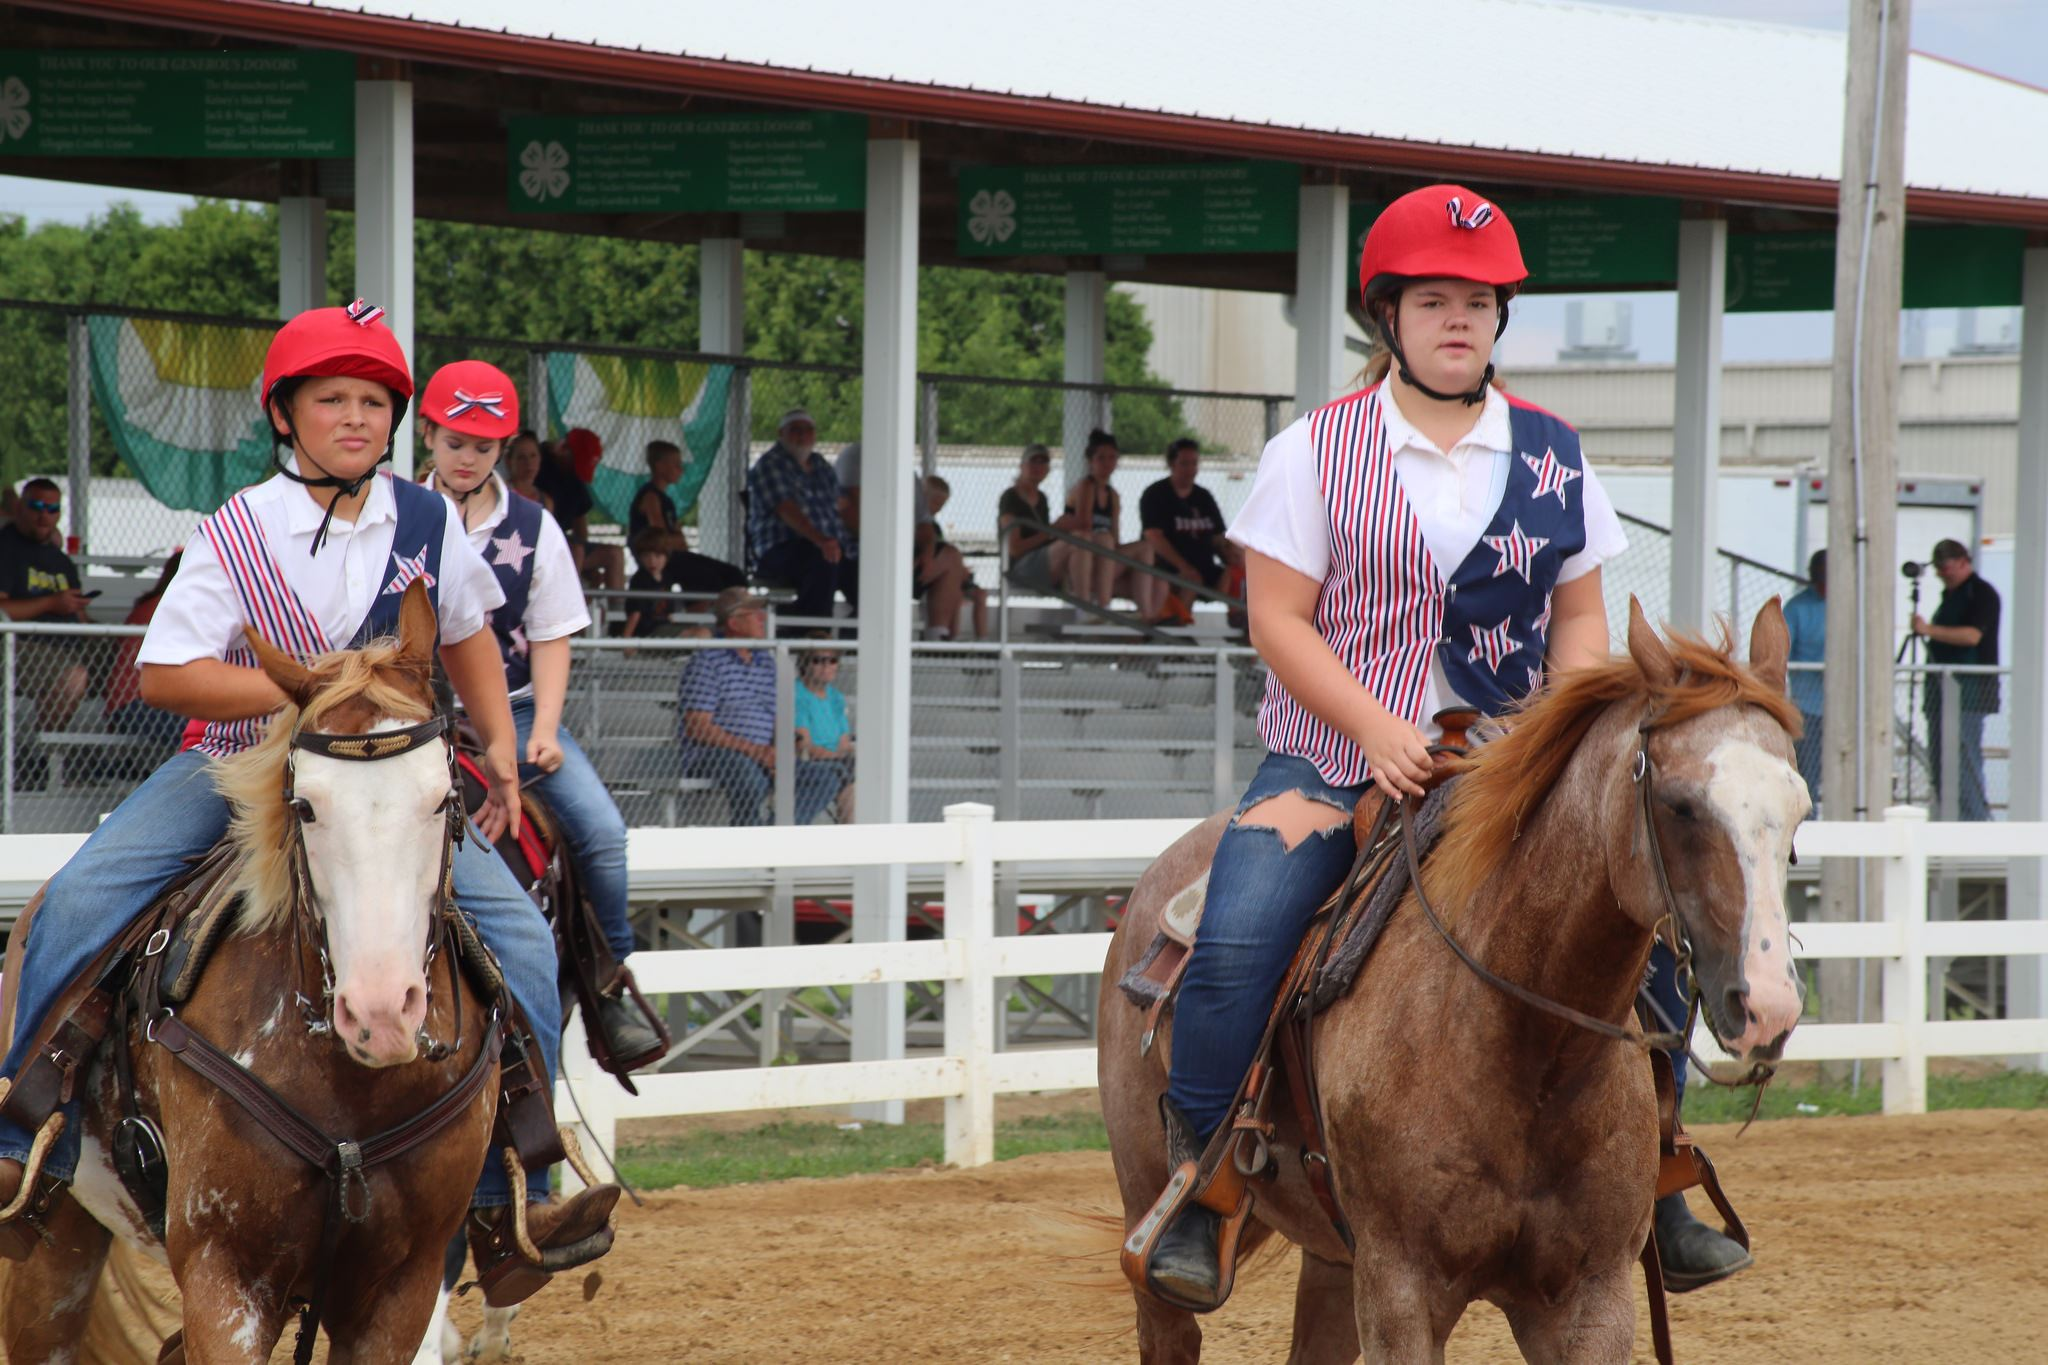 Three horses and riders at a horse show